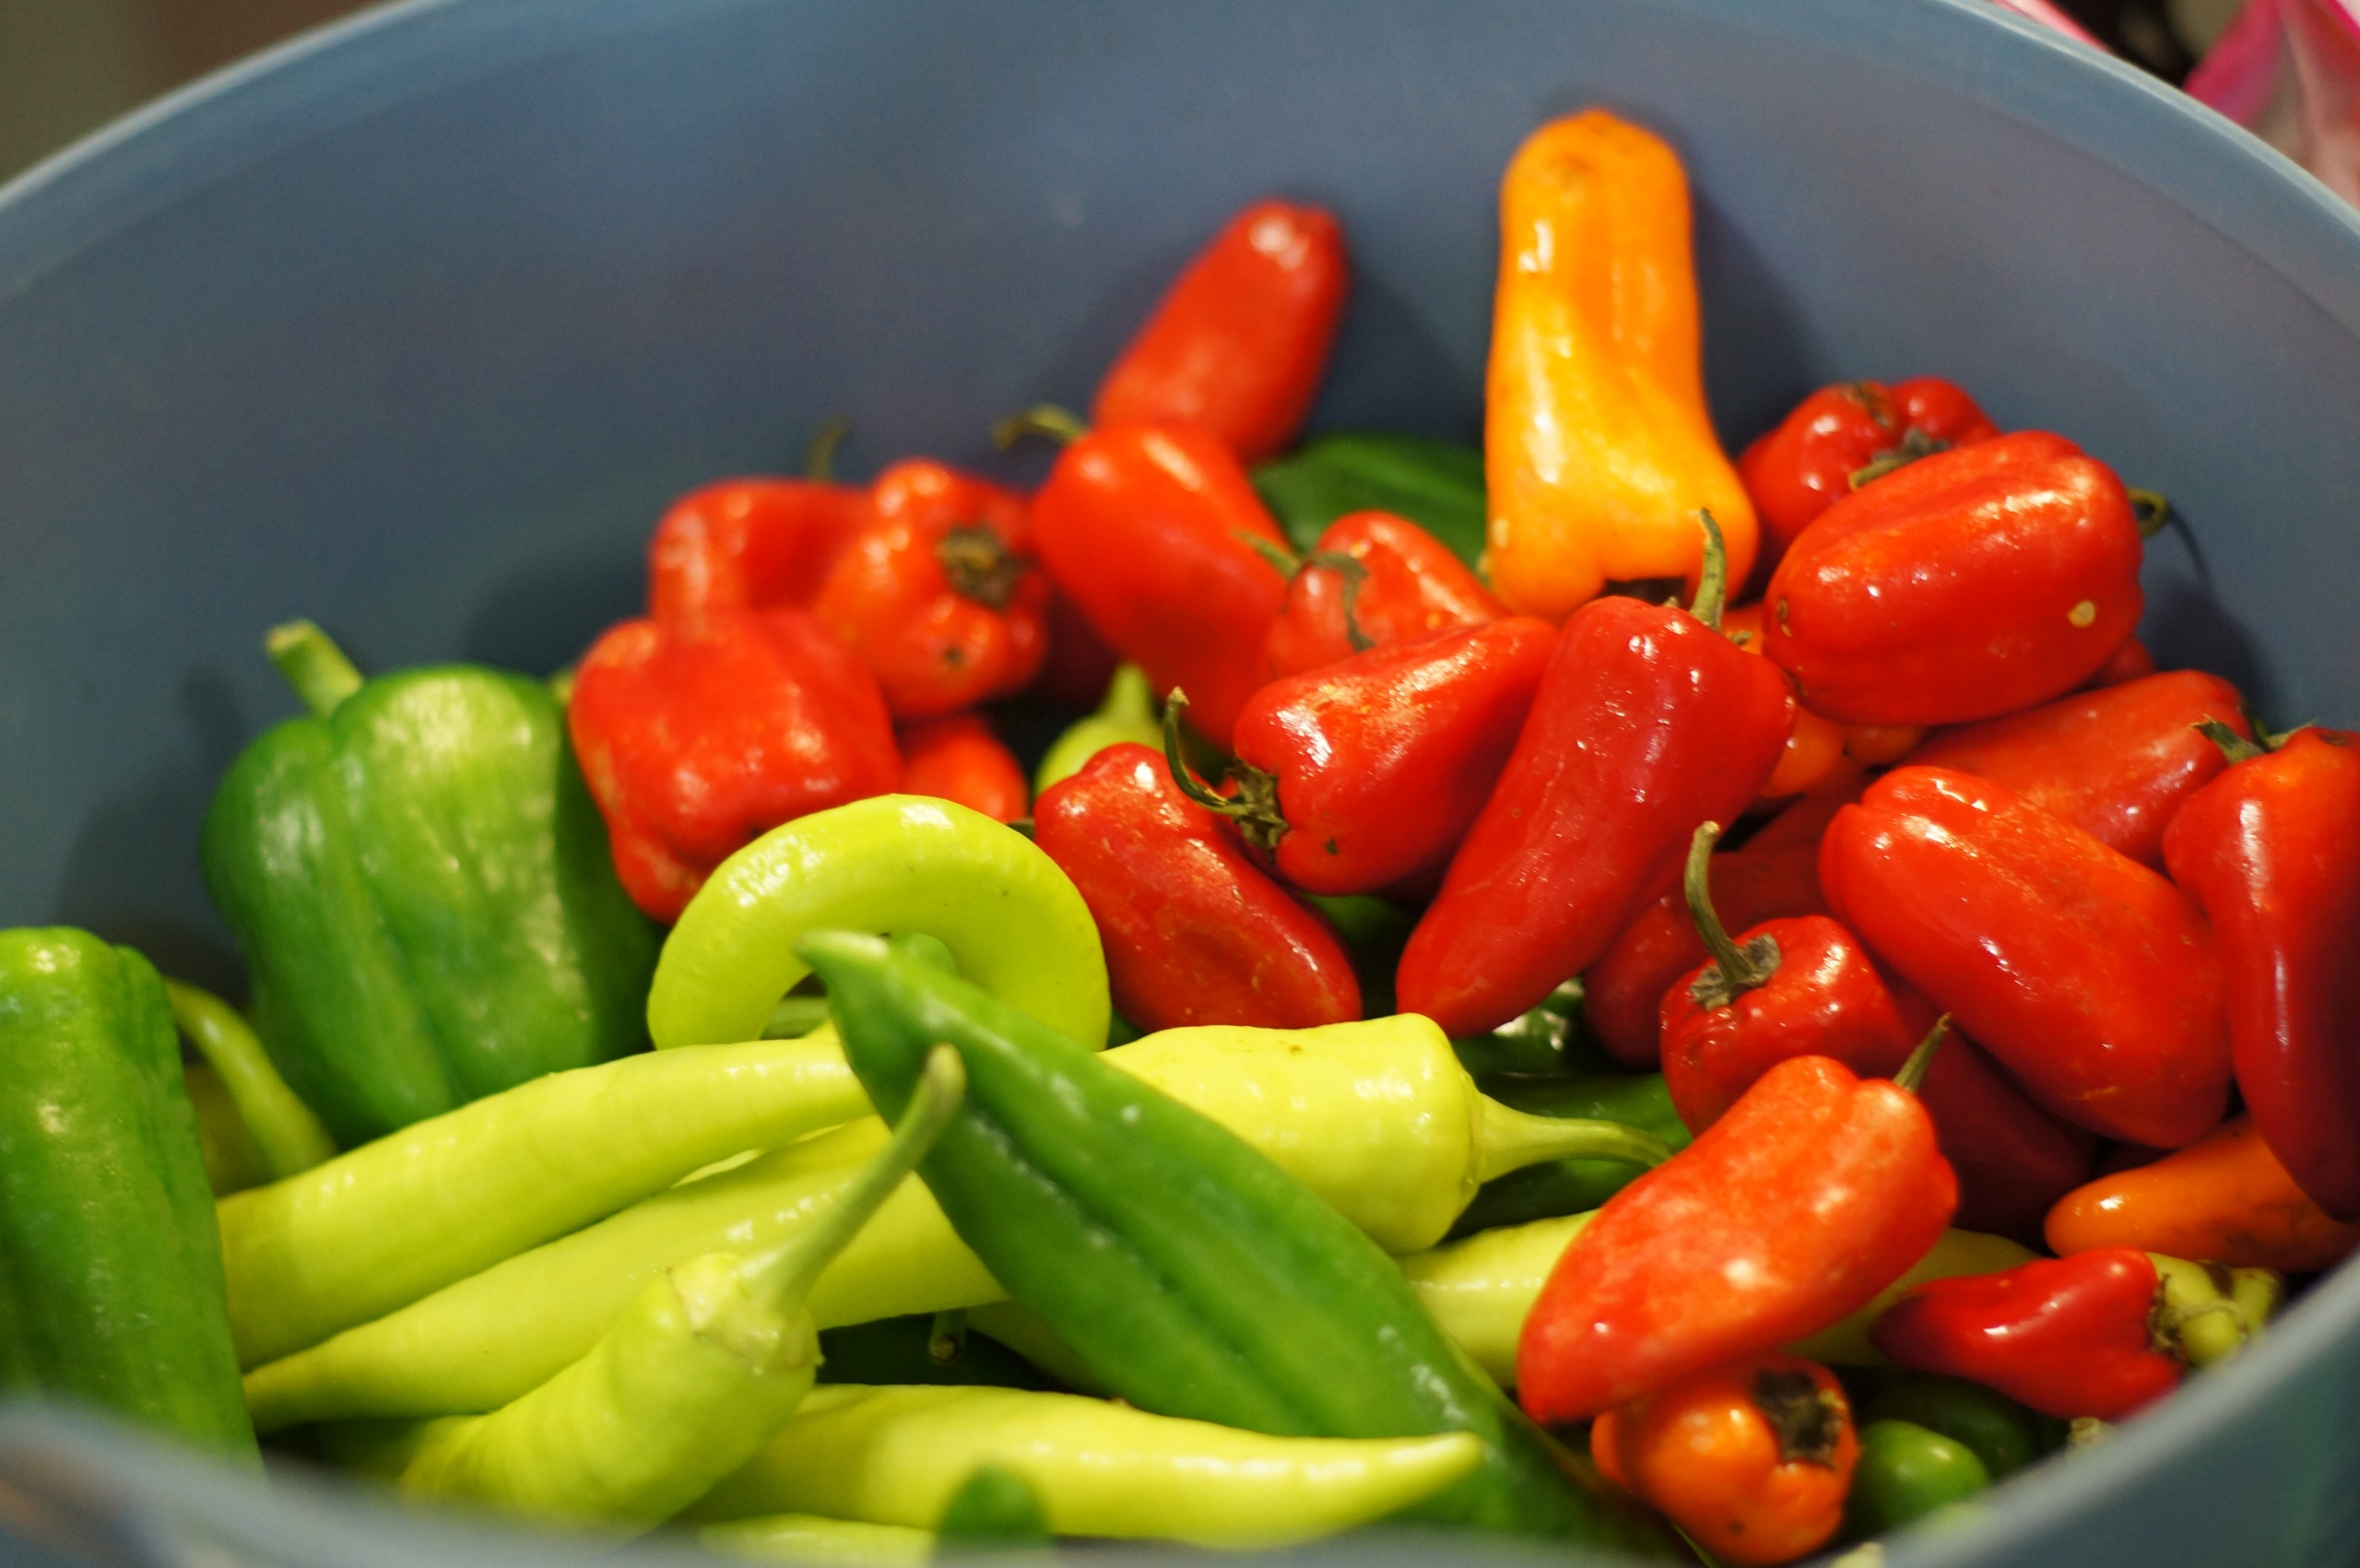 Harvested peppers